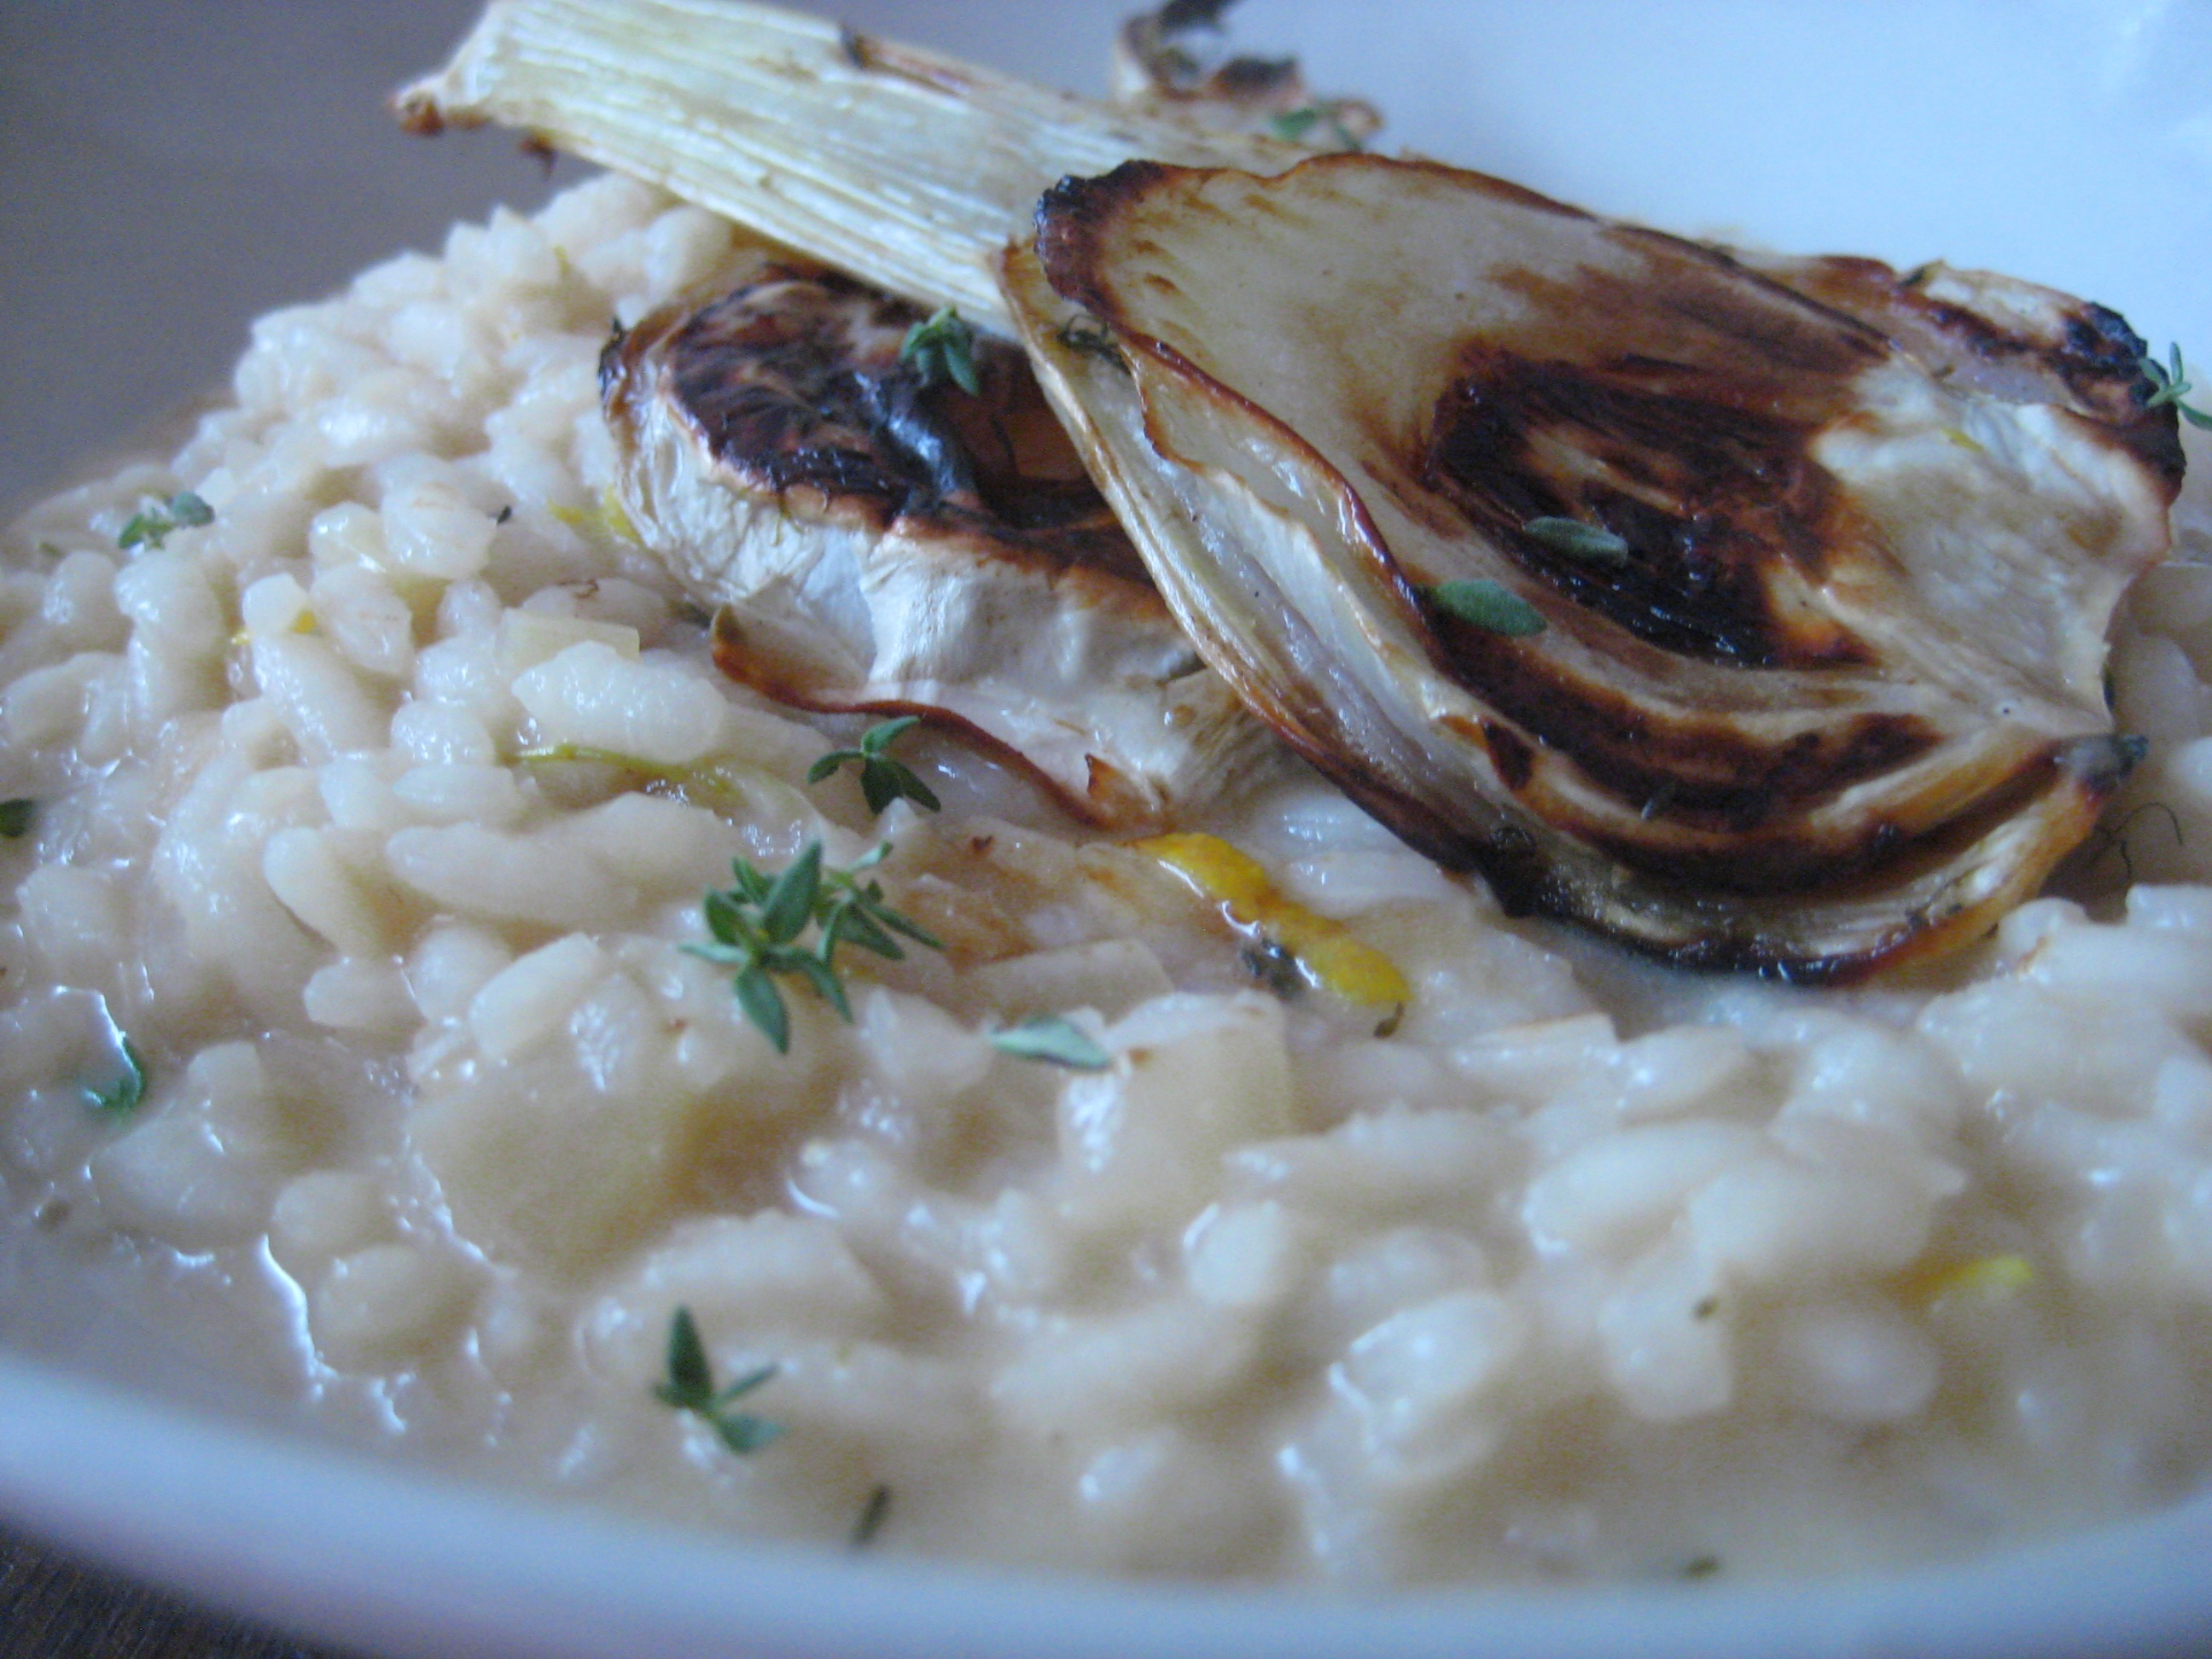 Lemon & fennel risotto